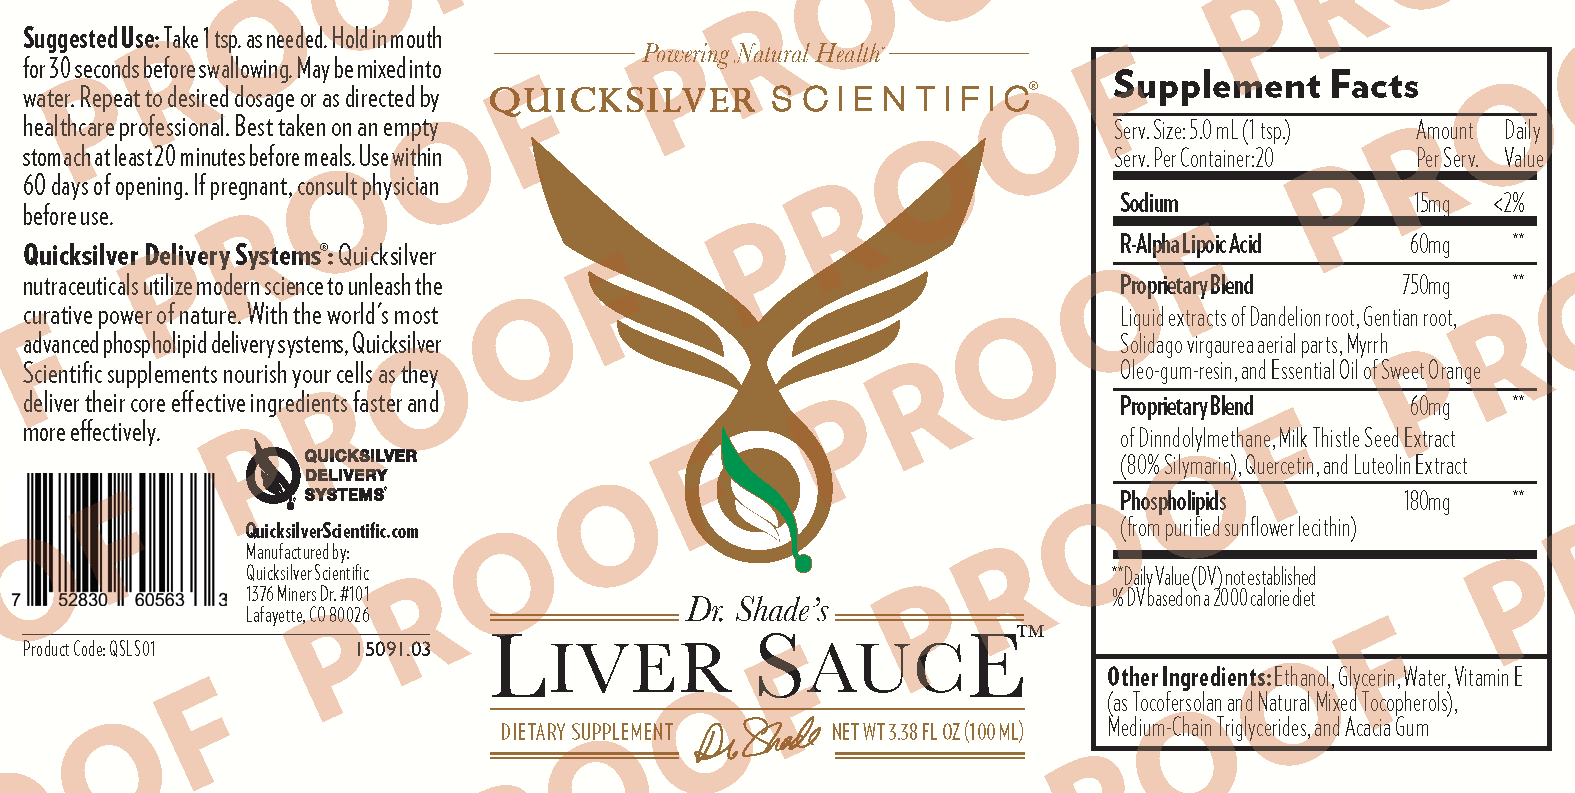 Liver Sauce 100ml Herbal Line 1509103 Astragalus Combo #1 - 2 oz